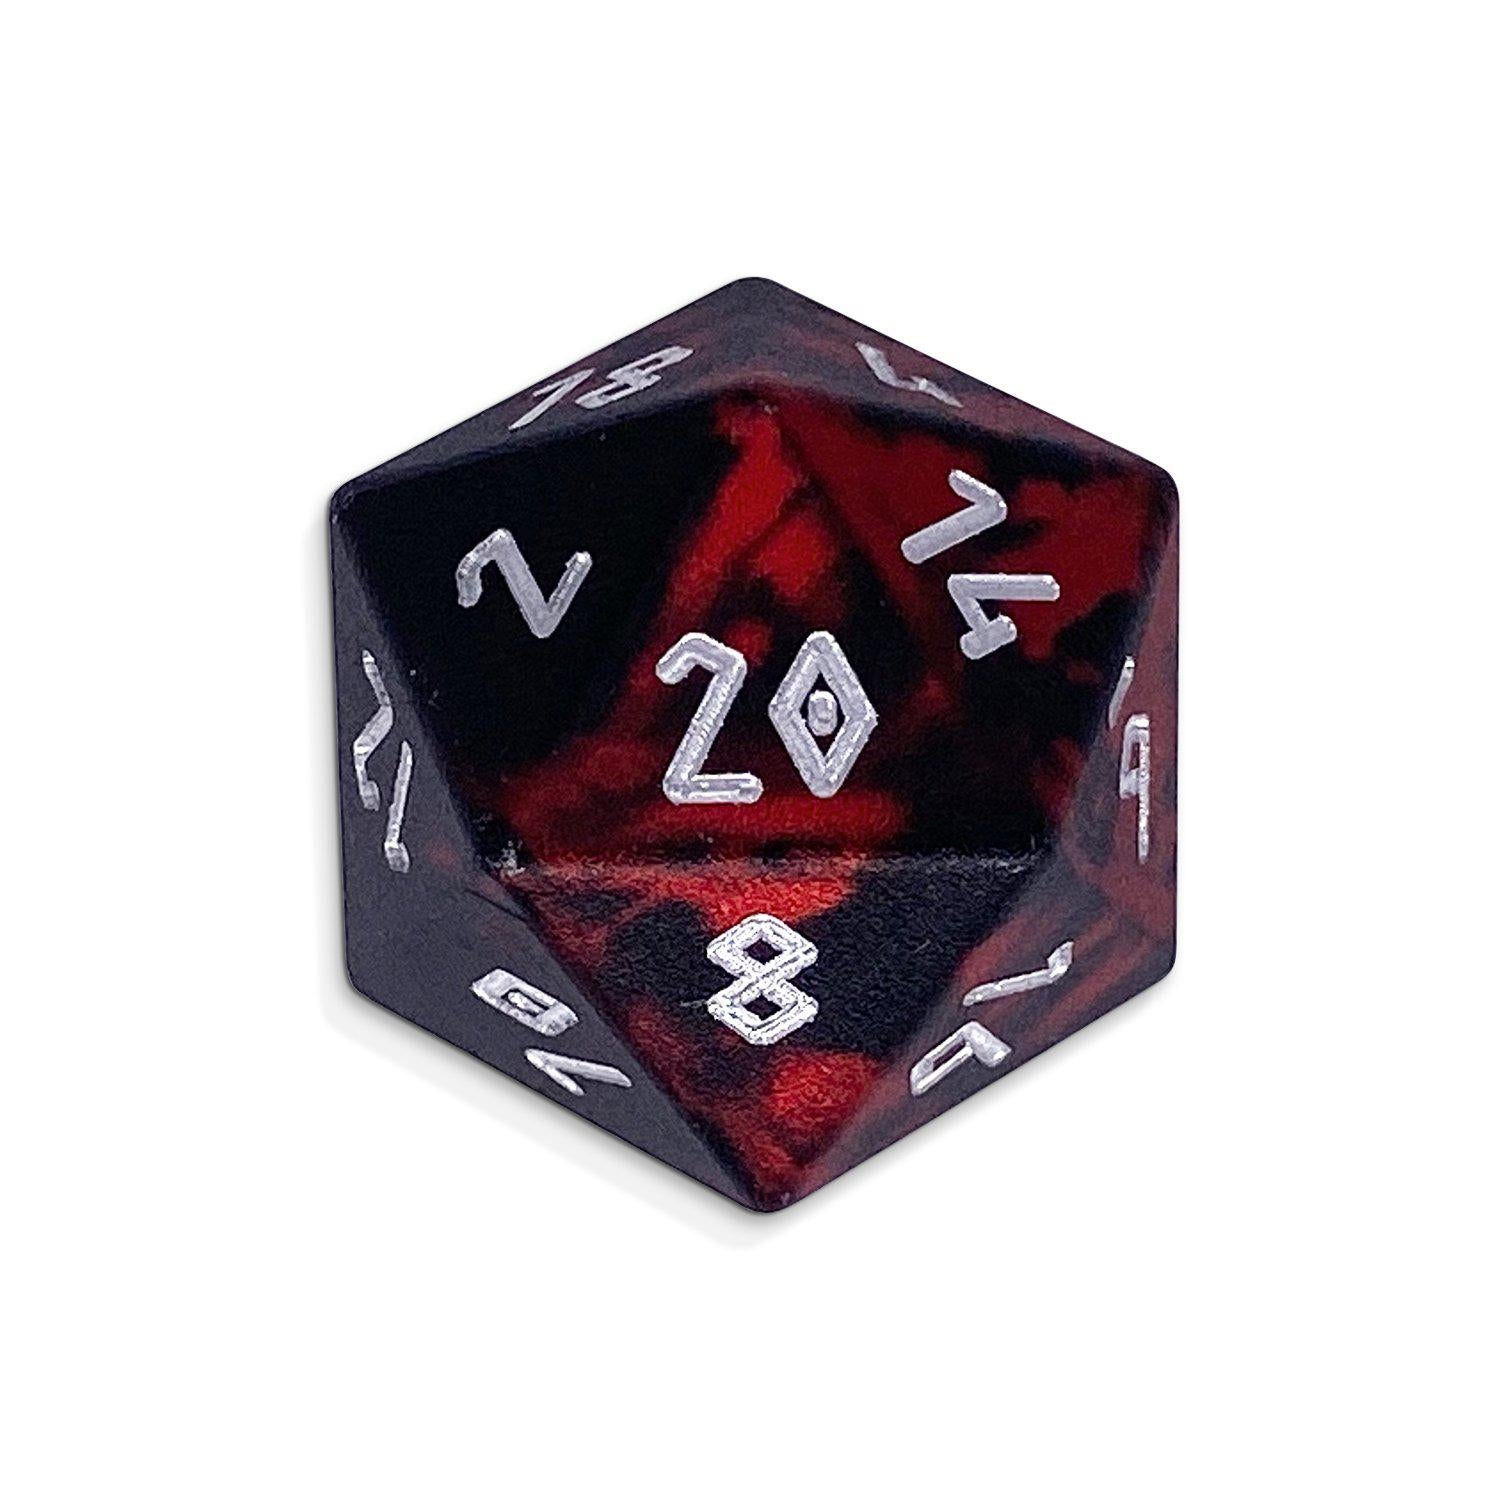 Single Wondrous Dice® D20 in Demons Blood by Norse Foundry 6063 Aircraft Grade Aluminum